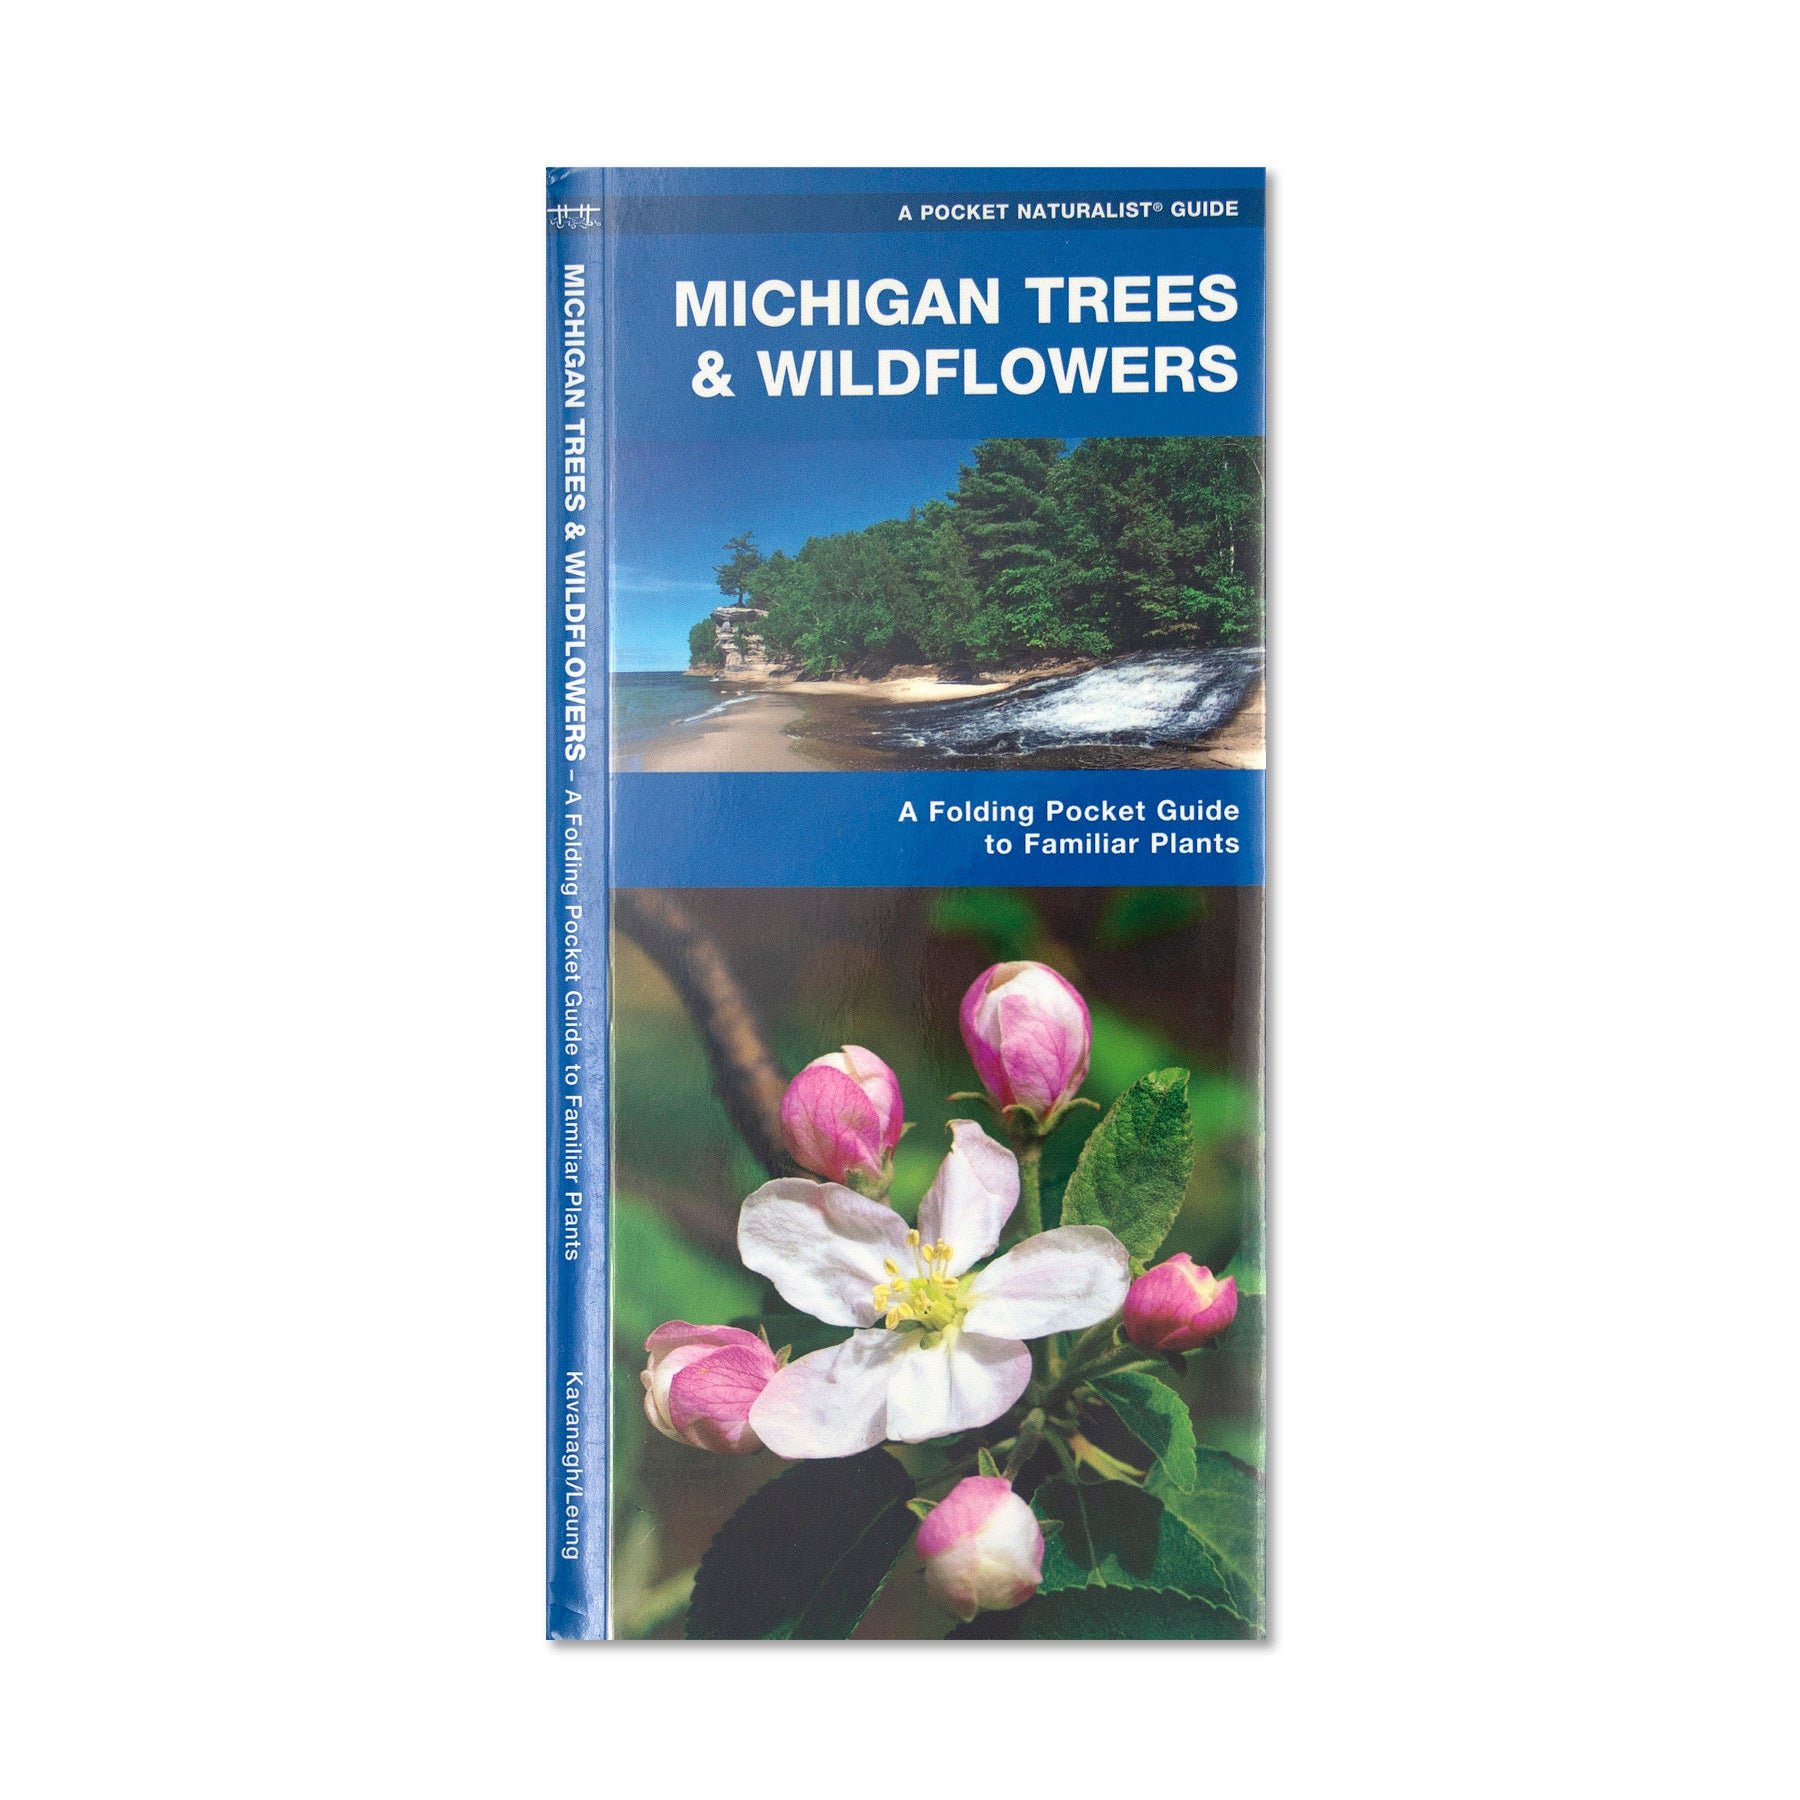 Michigan Trees & Wildflowers Pocket Guide